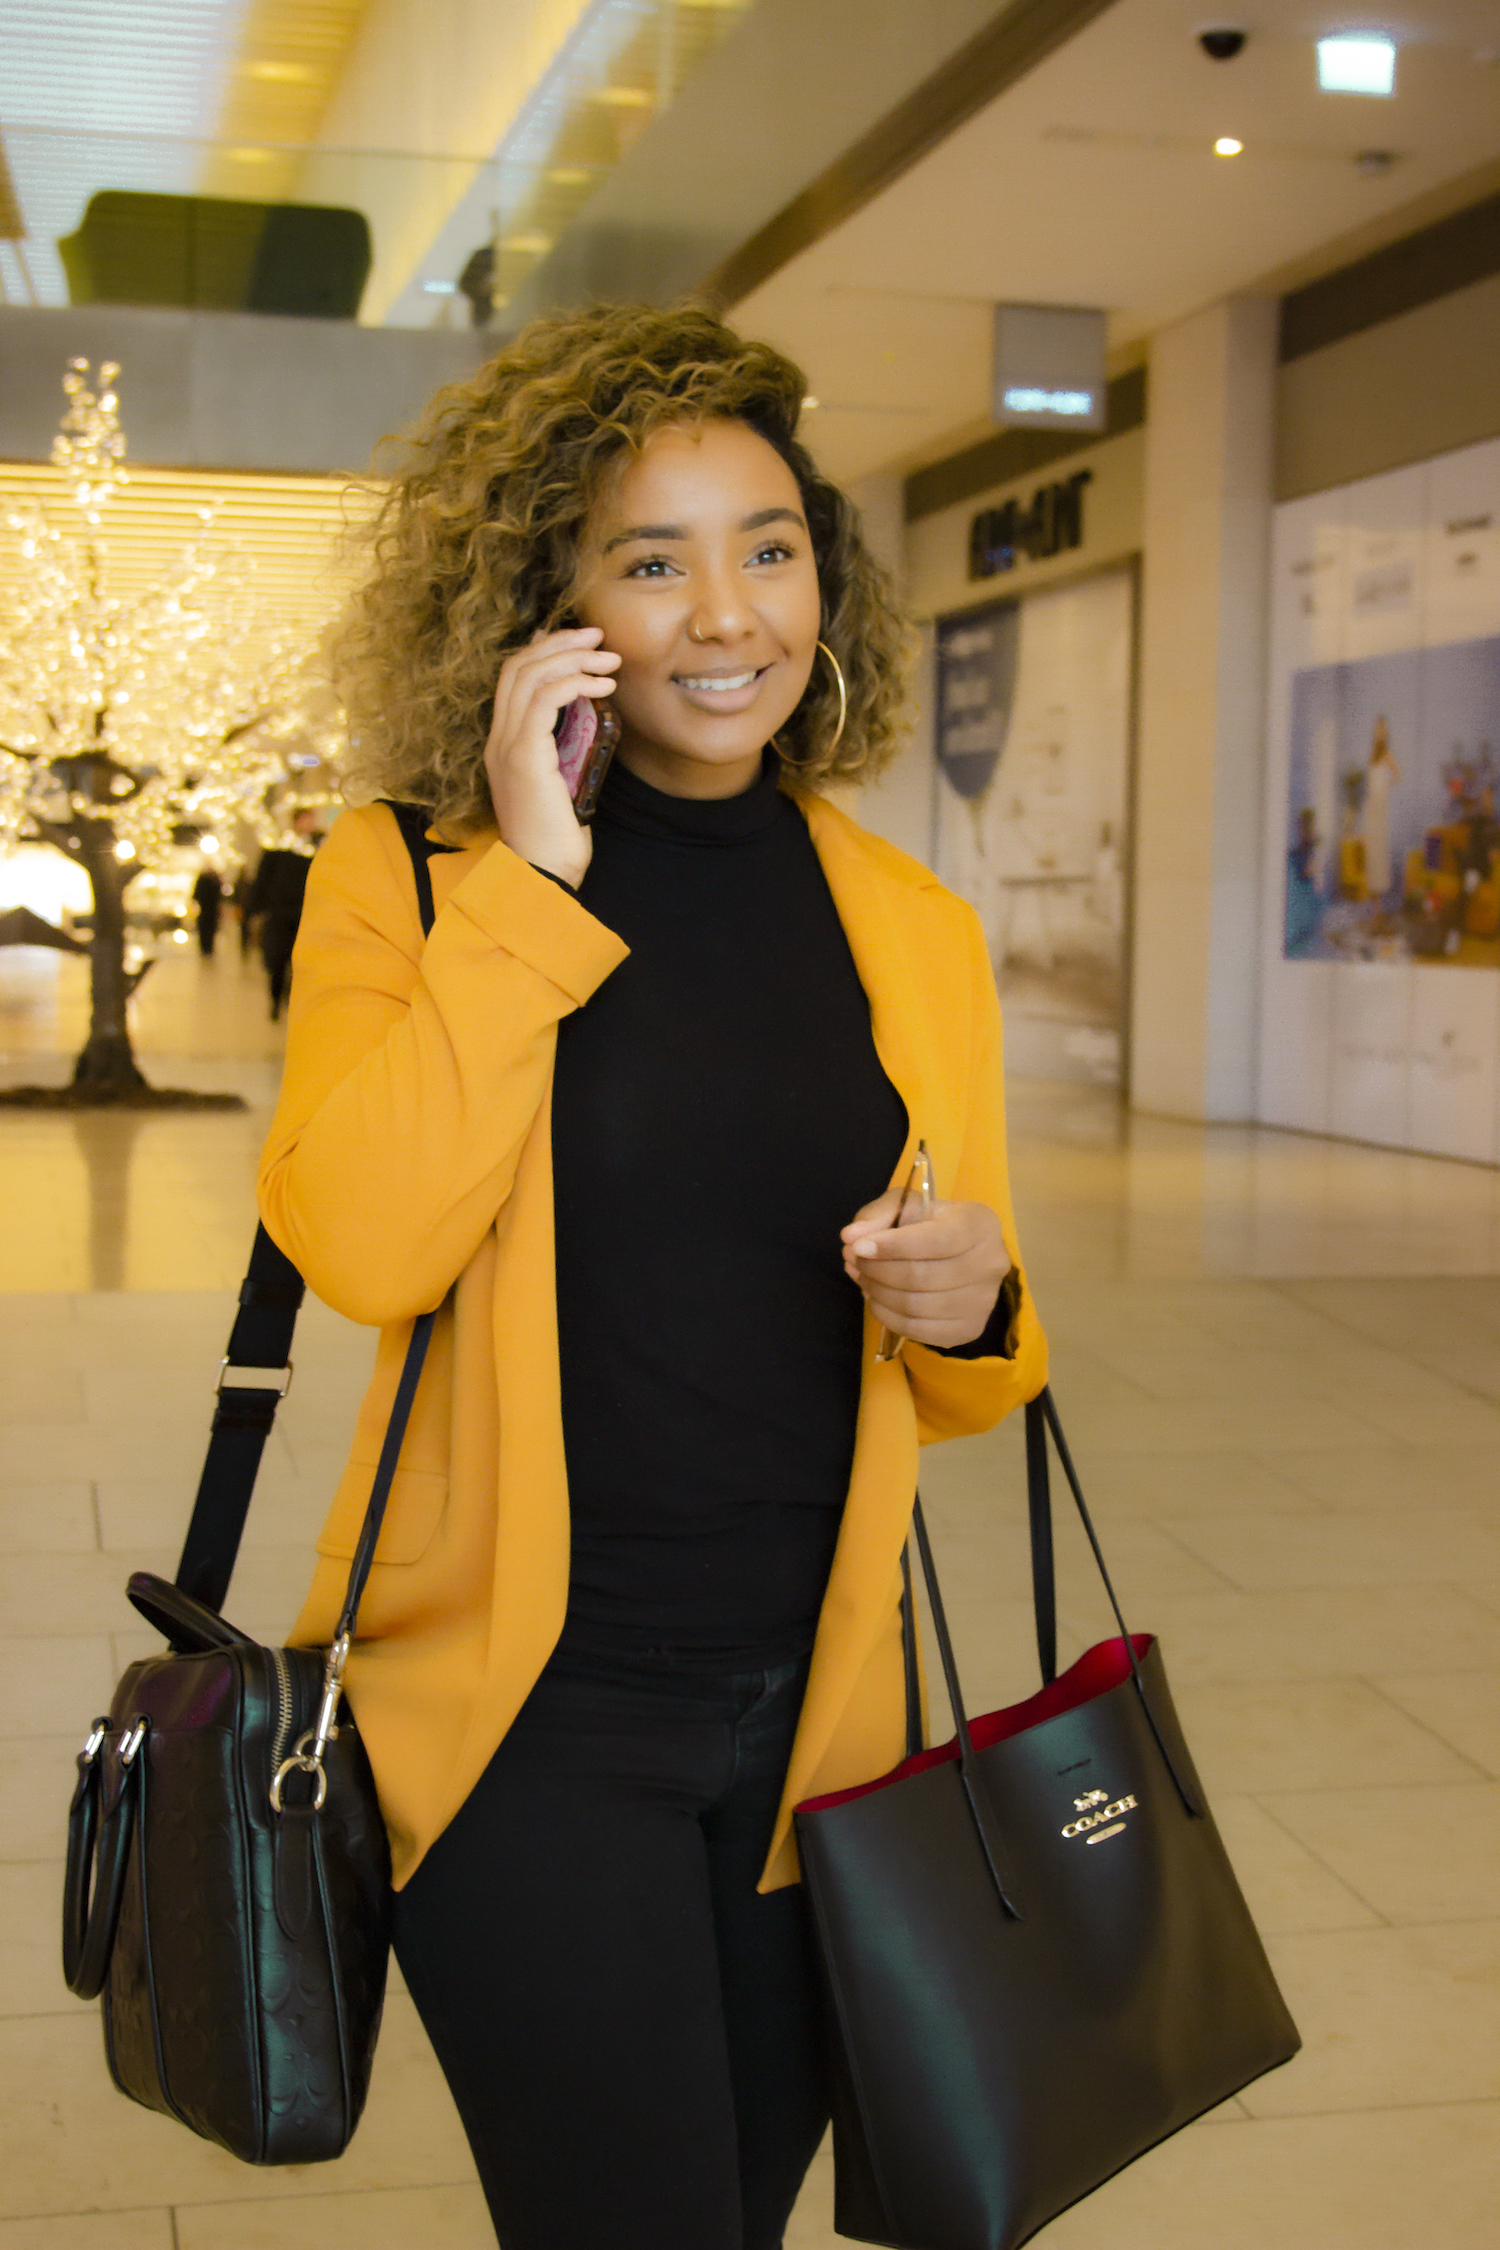 Lianne Digital Marketing Consultant walking and talking on the phone